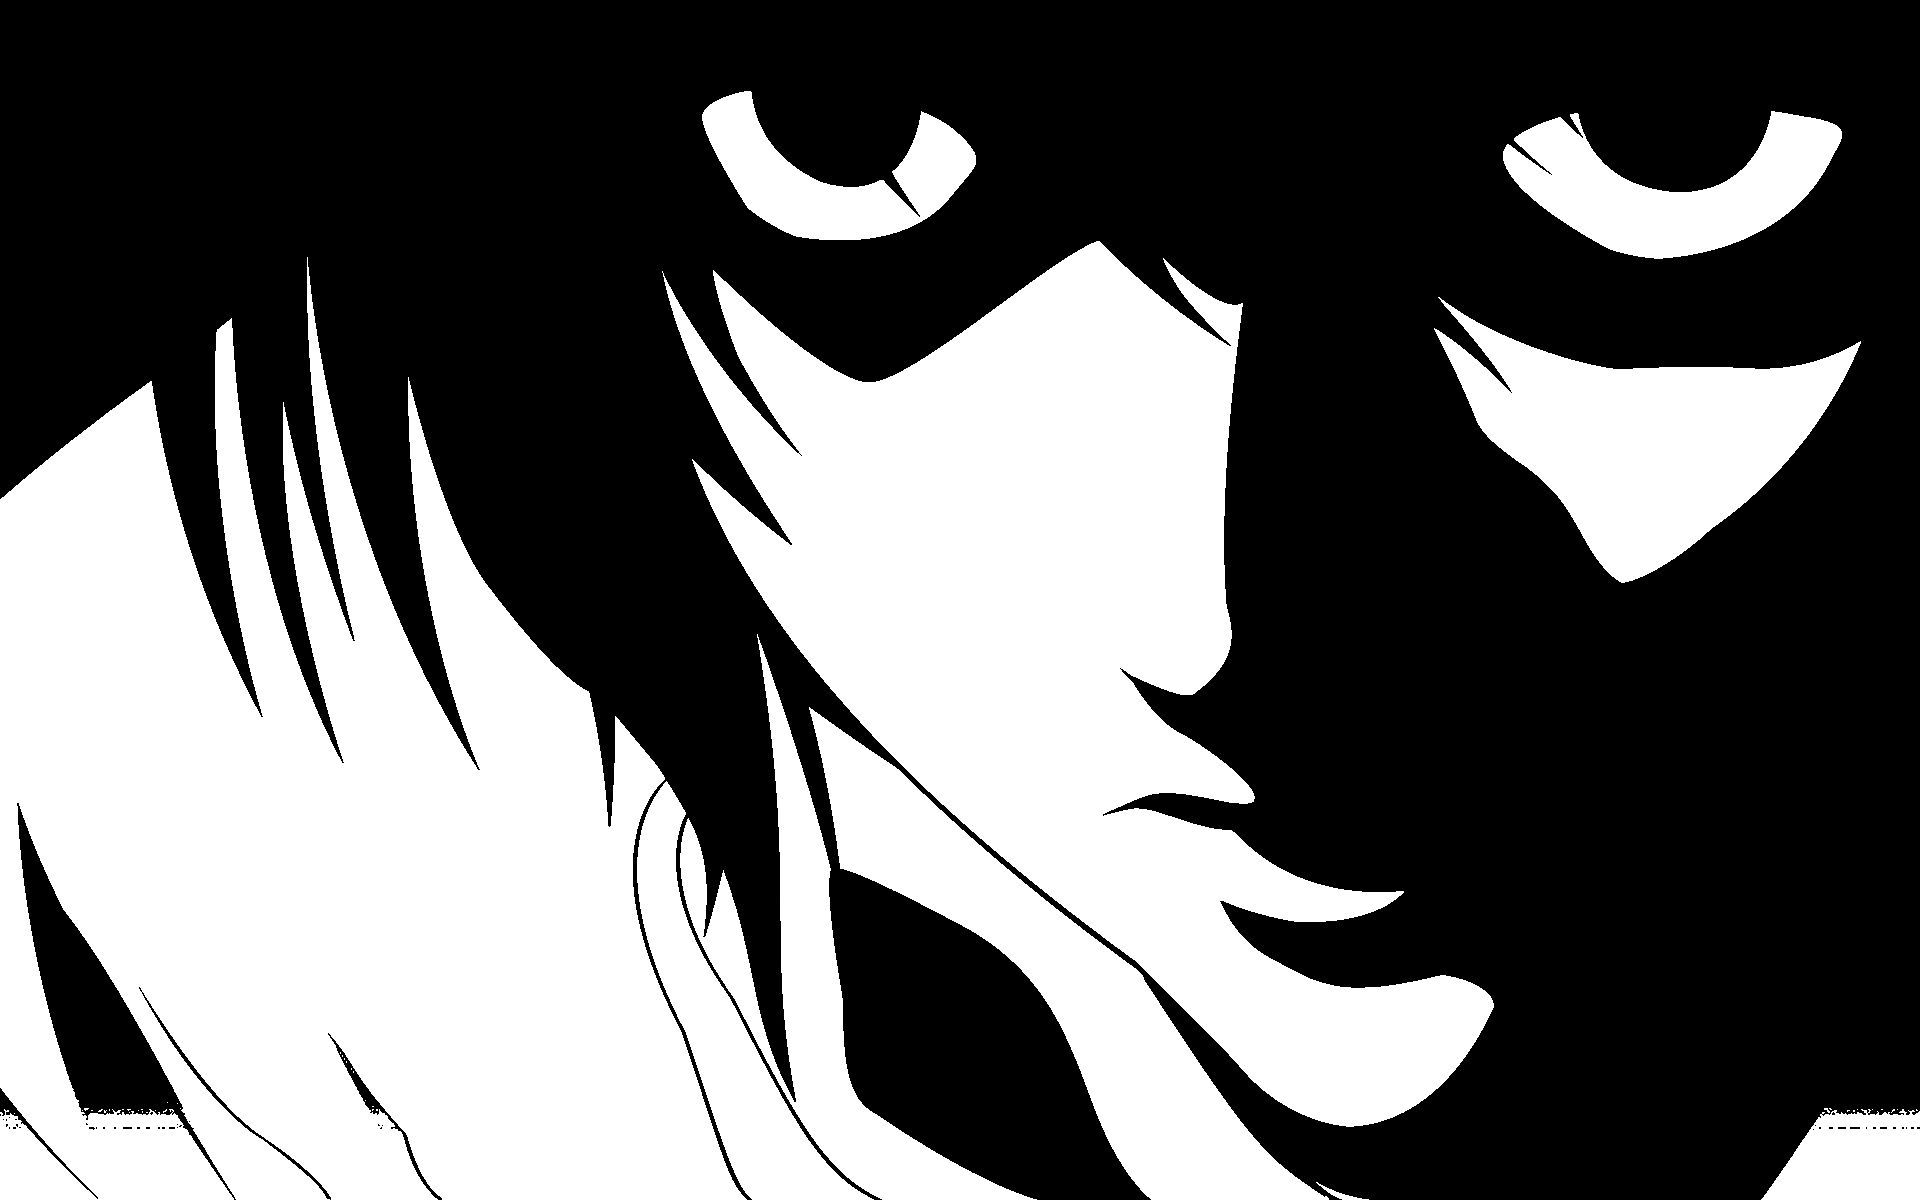 1920x1200 Death Note Wallpaper Anime Manga in Japan Black and White Wallpapers ...